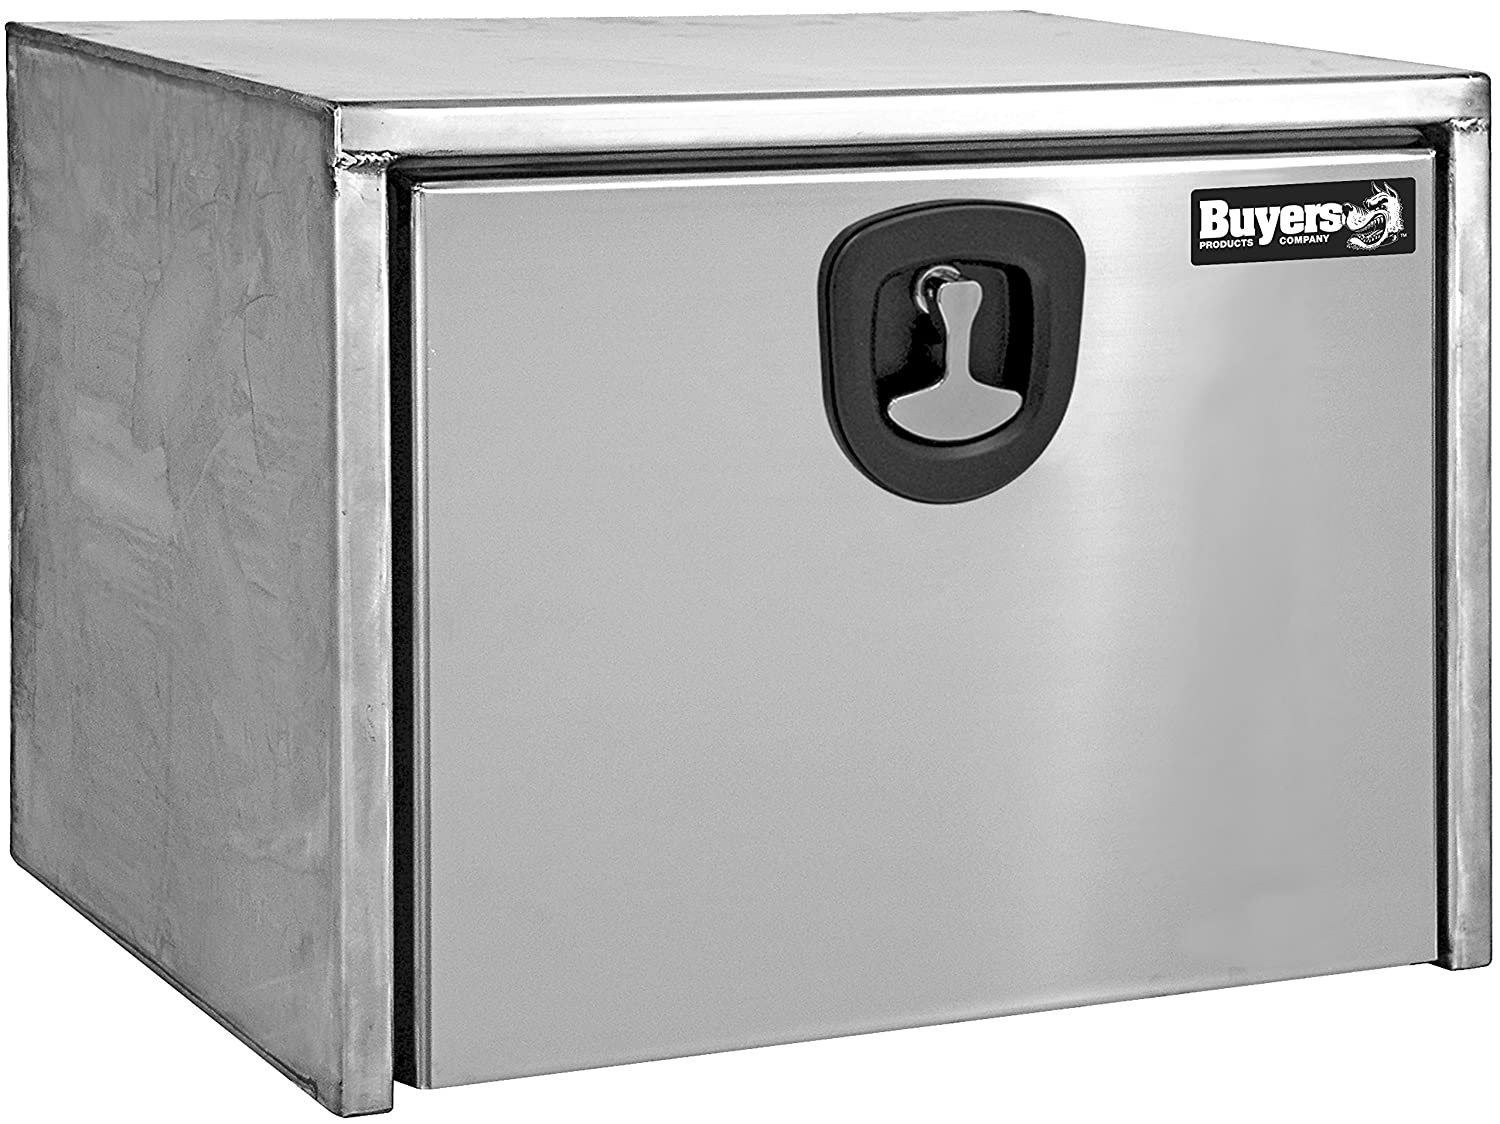 Buyers Products Stainless Steel Underbody Truck Box w//Polished Stainless Steel Door 1702595 18x18x18 Inch